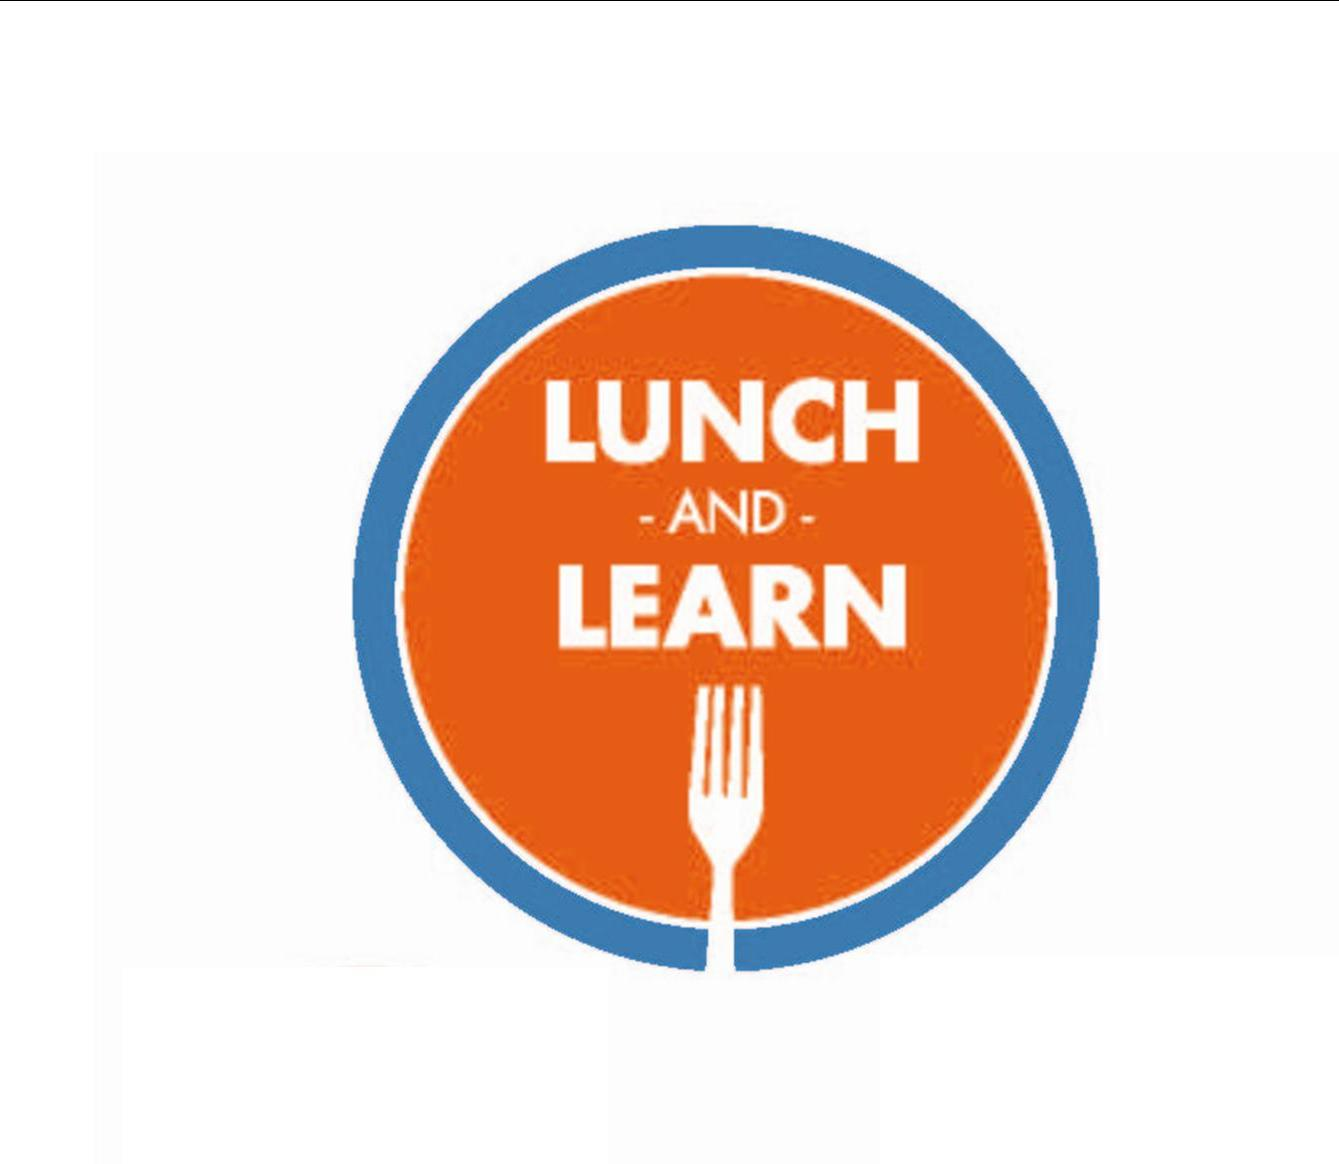 Lunch+and+Learn+2